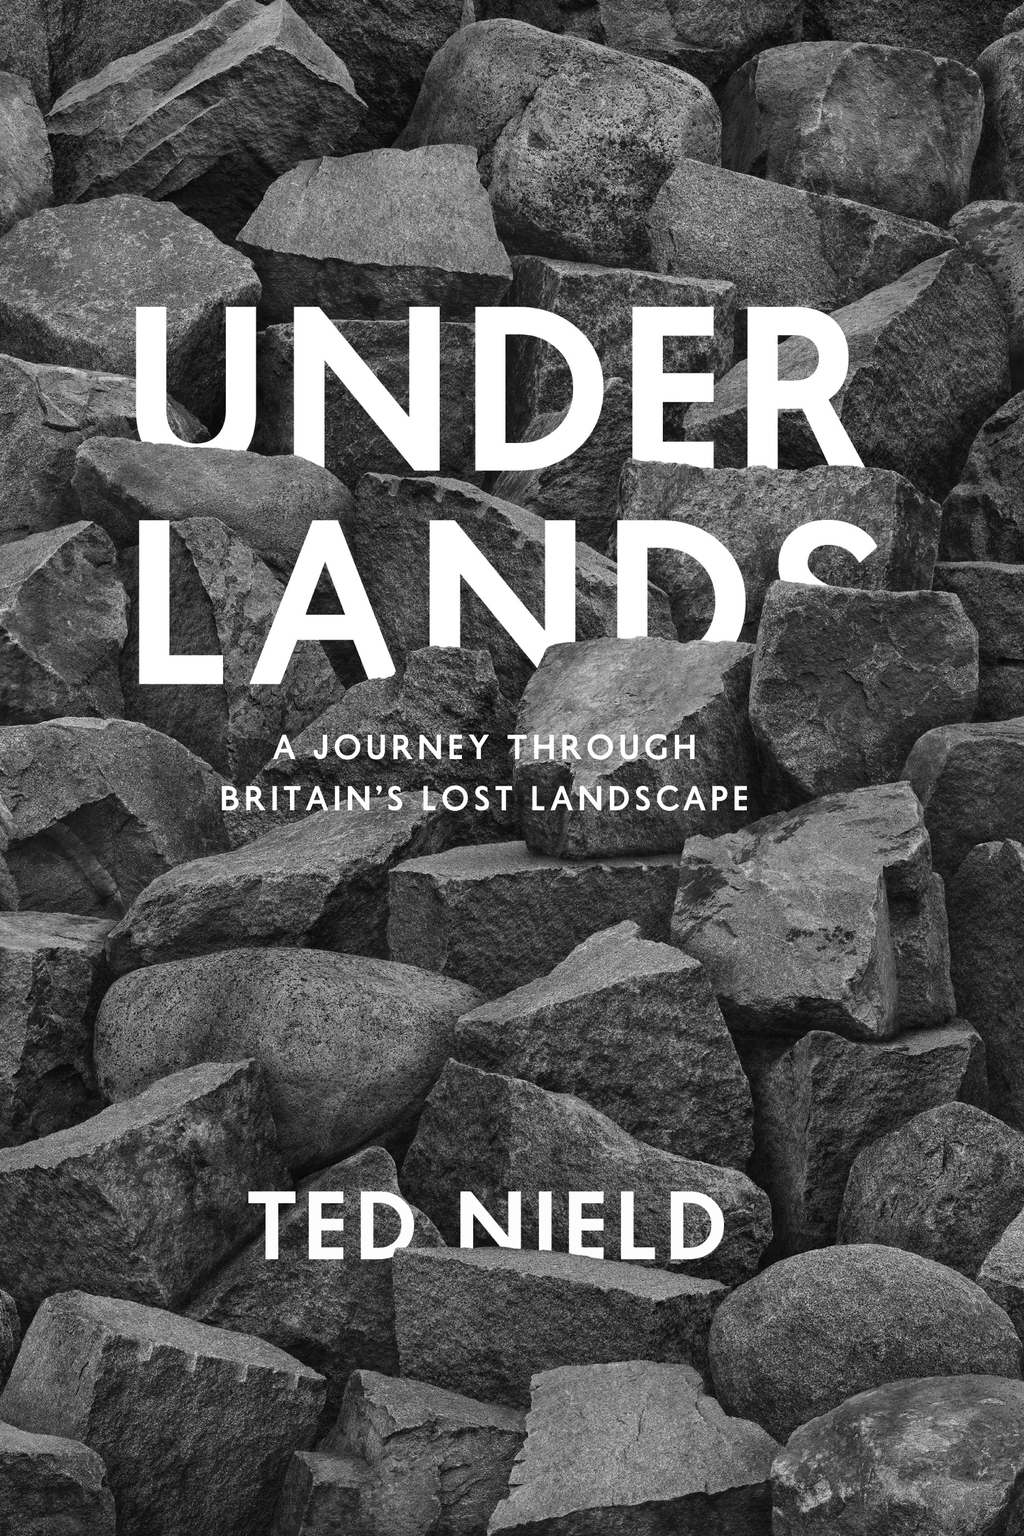 Underlands A Journey Through Britain?s Lost Landscape